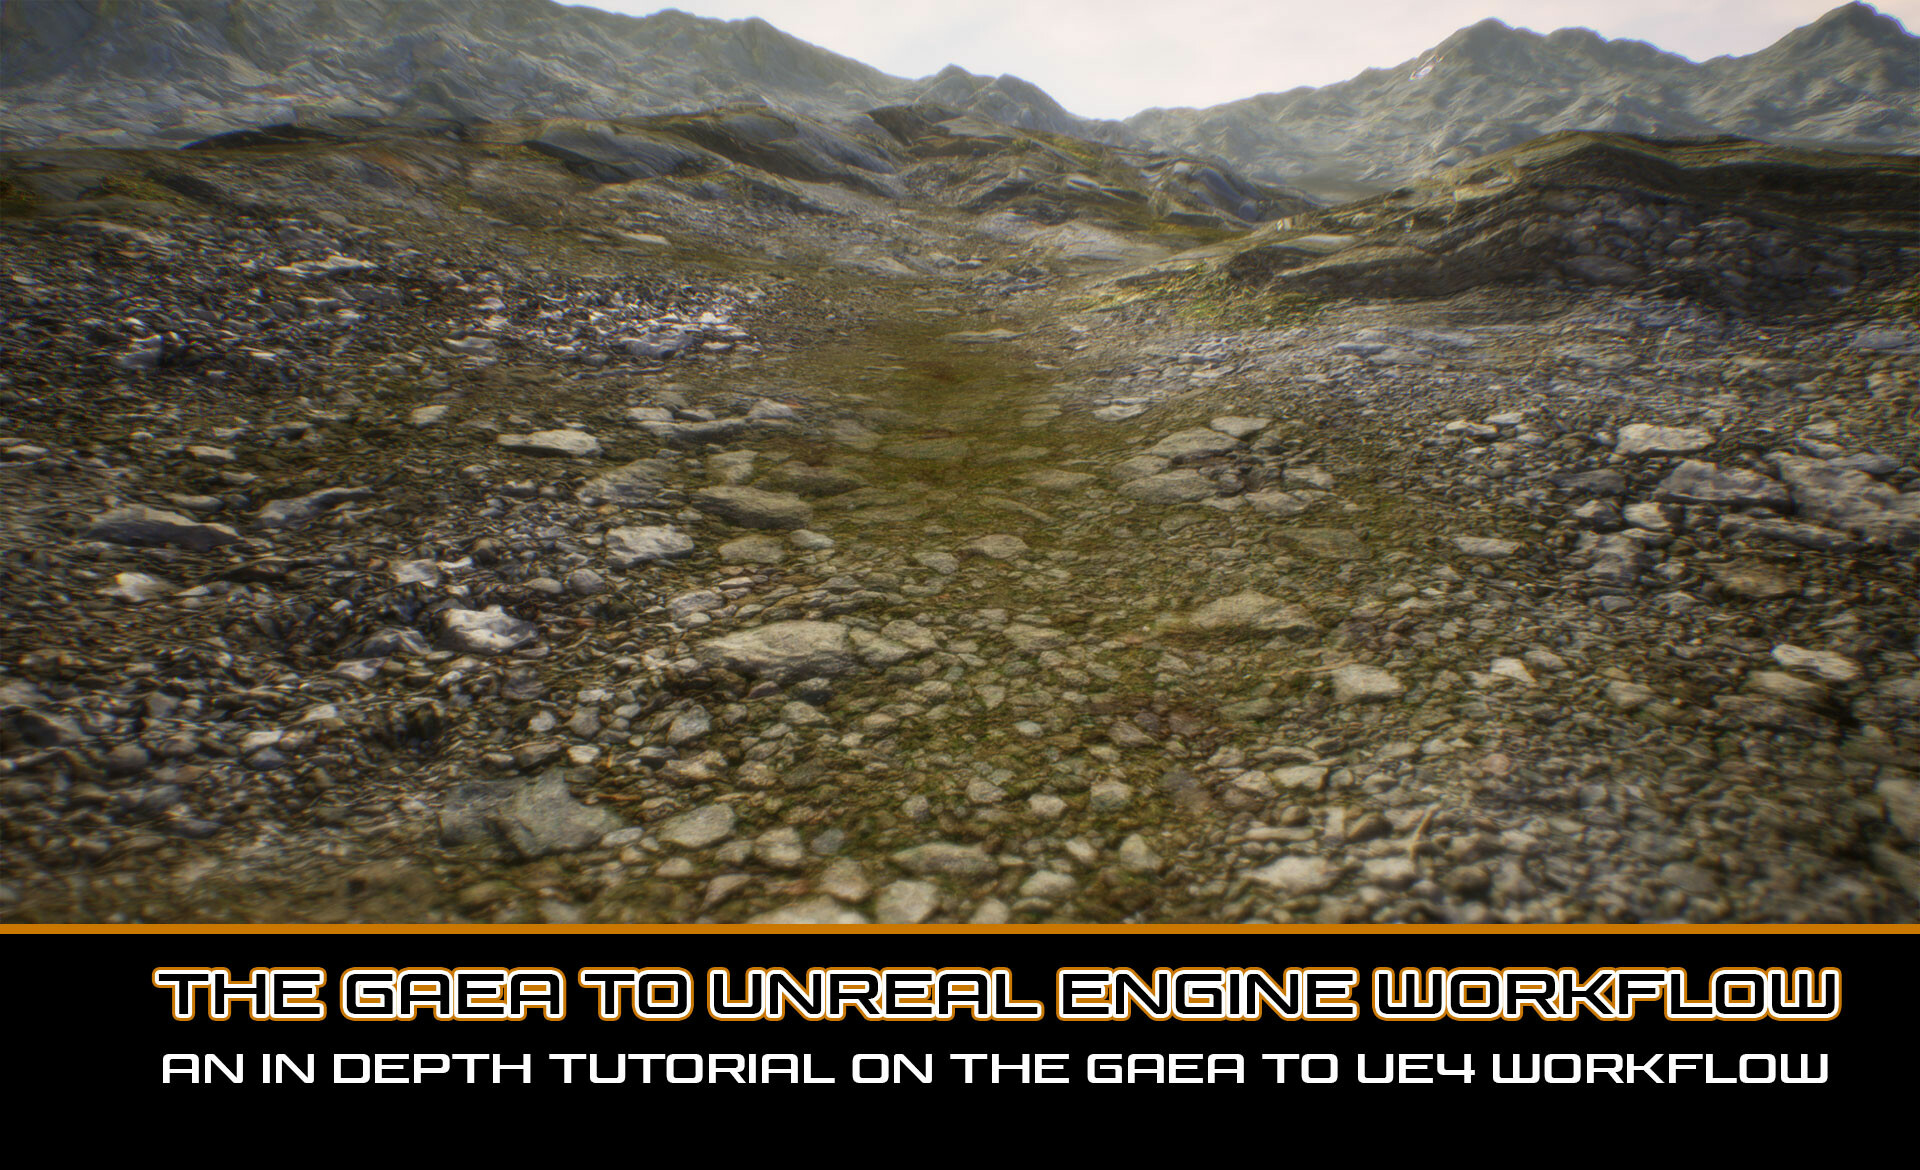 ArtStation - Images from 'The Gaea to UE4 Workflow ', Wayne